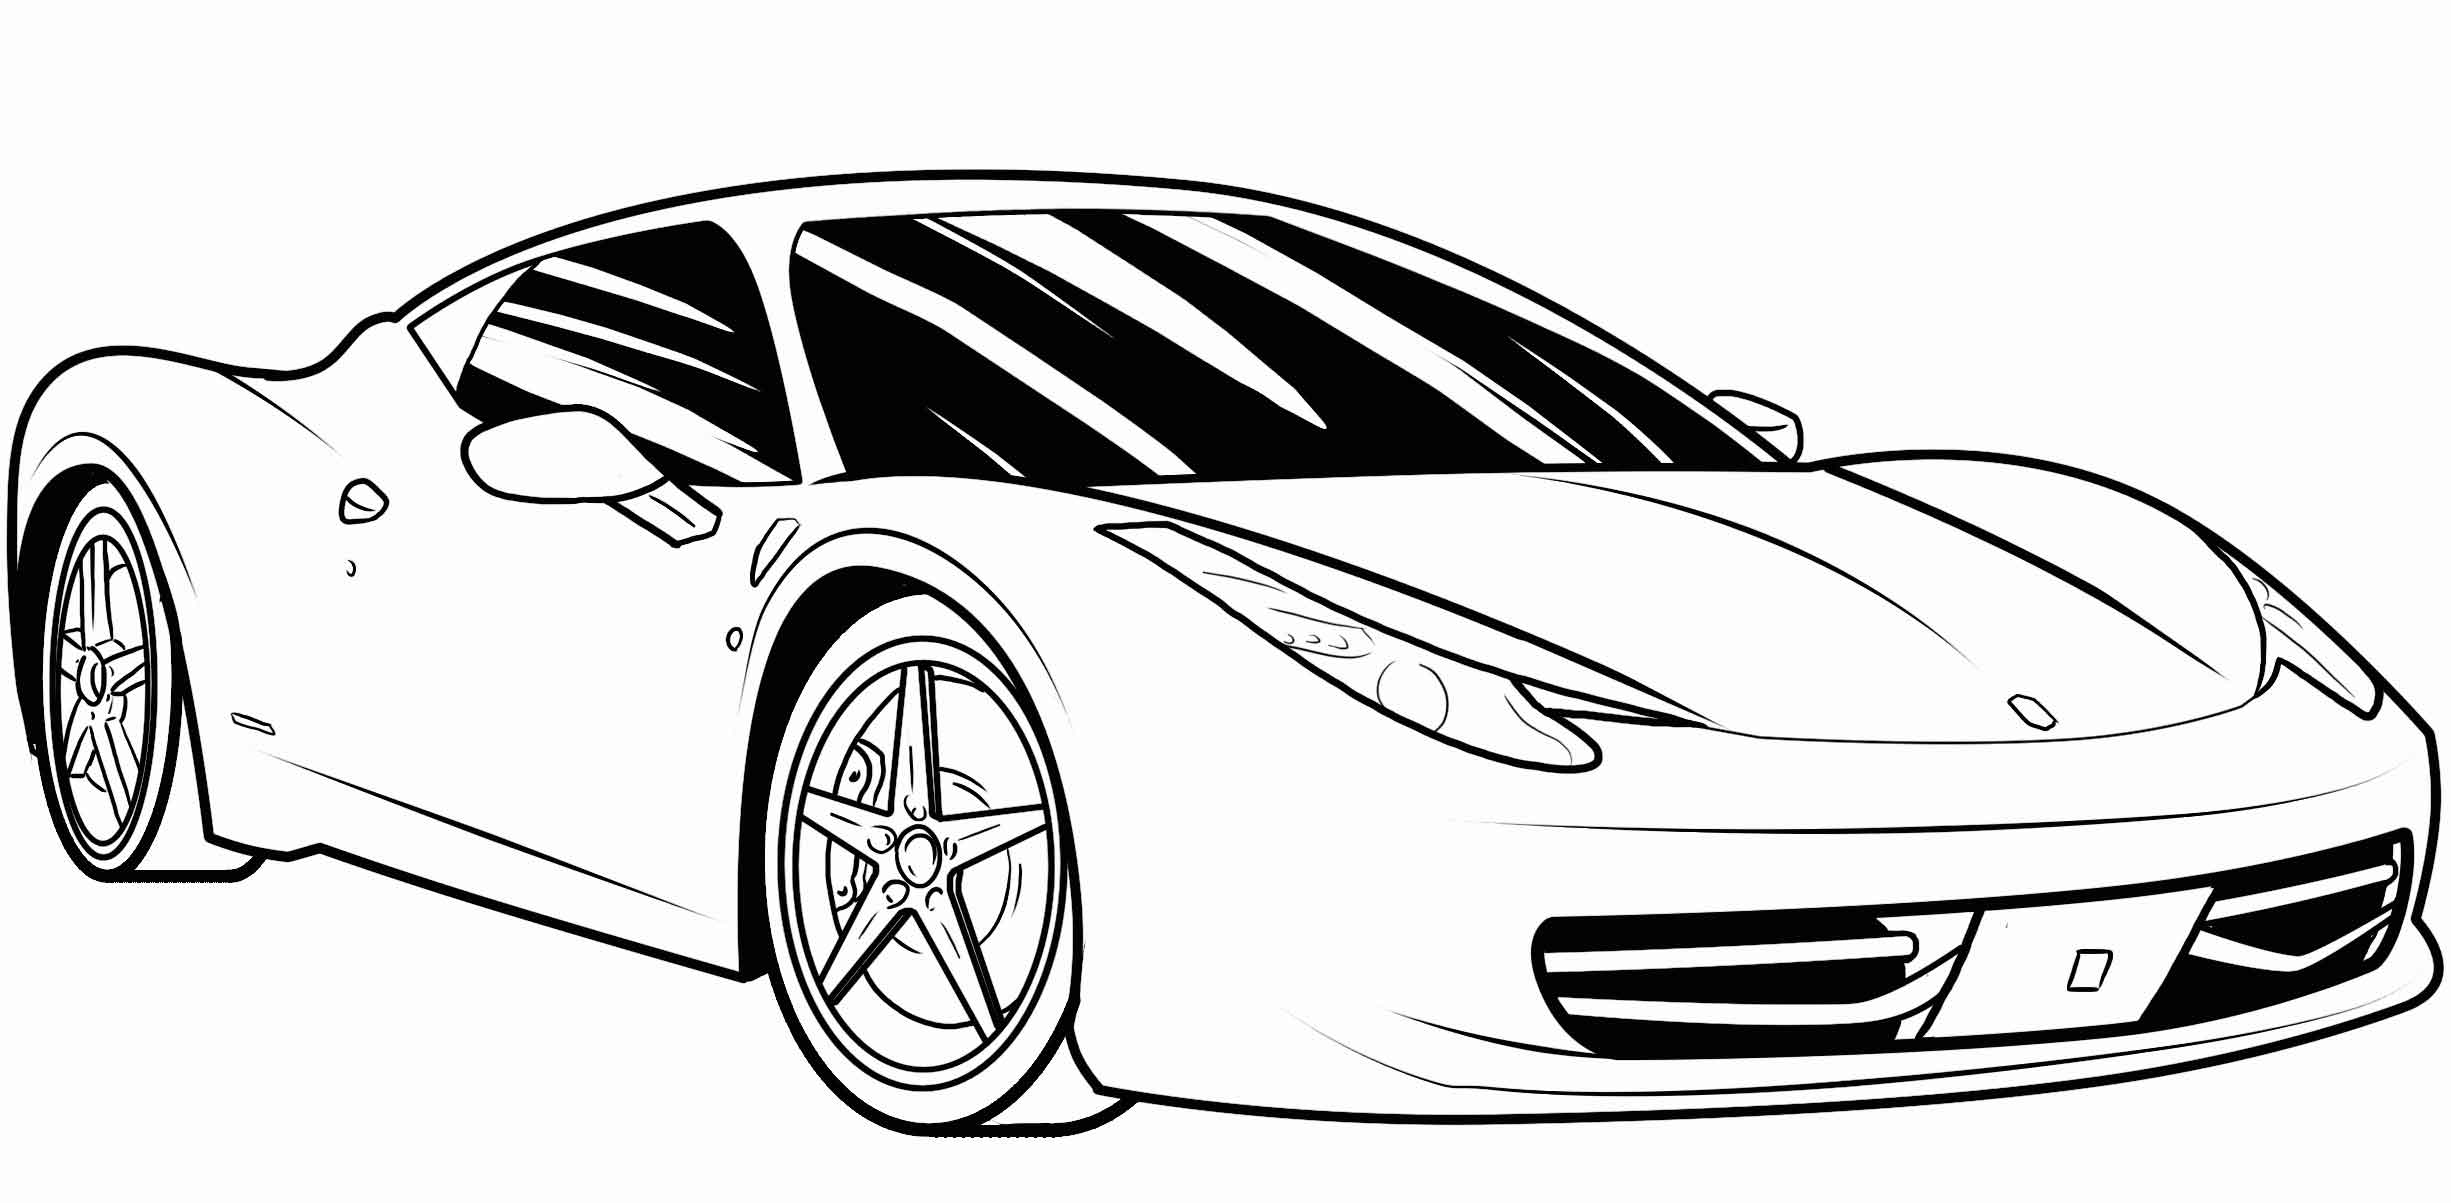 free printable car coloring pages top 25 free printable colorful cars coloring pages online coloring pages free printable car